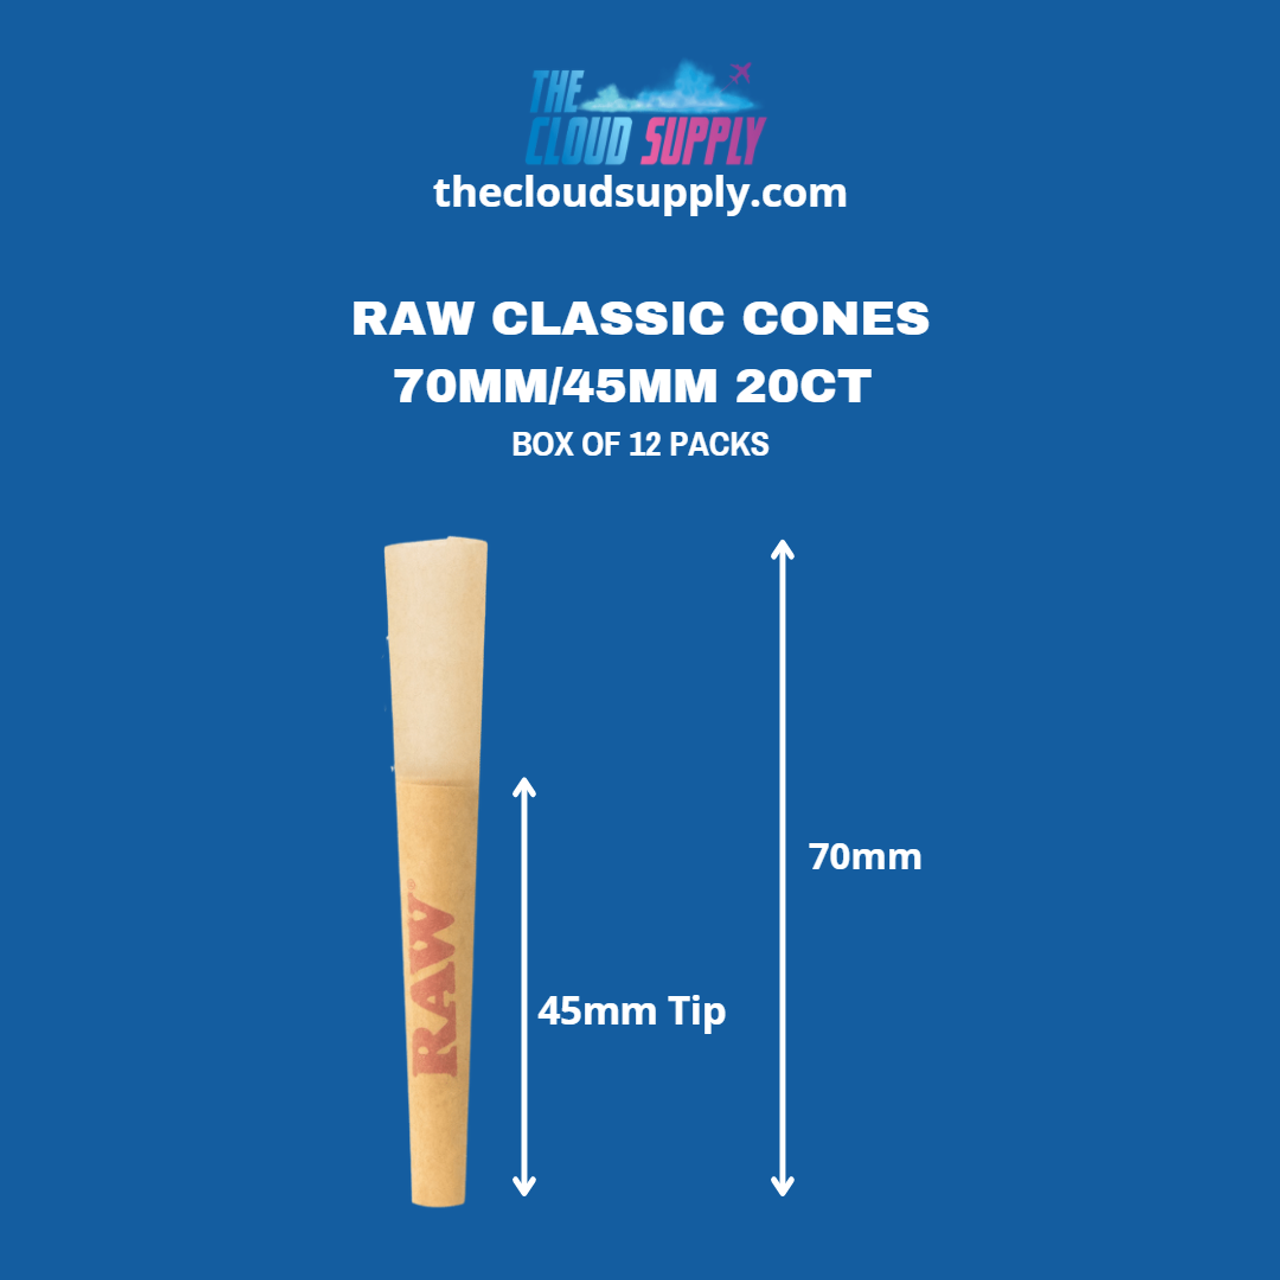 RAW Raw Classic Cones 70mm/45mm 20ct - Box of 12 Packs at The Cloud Supply